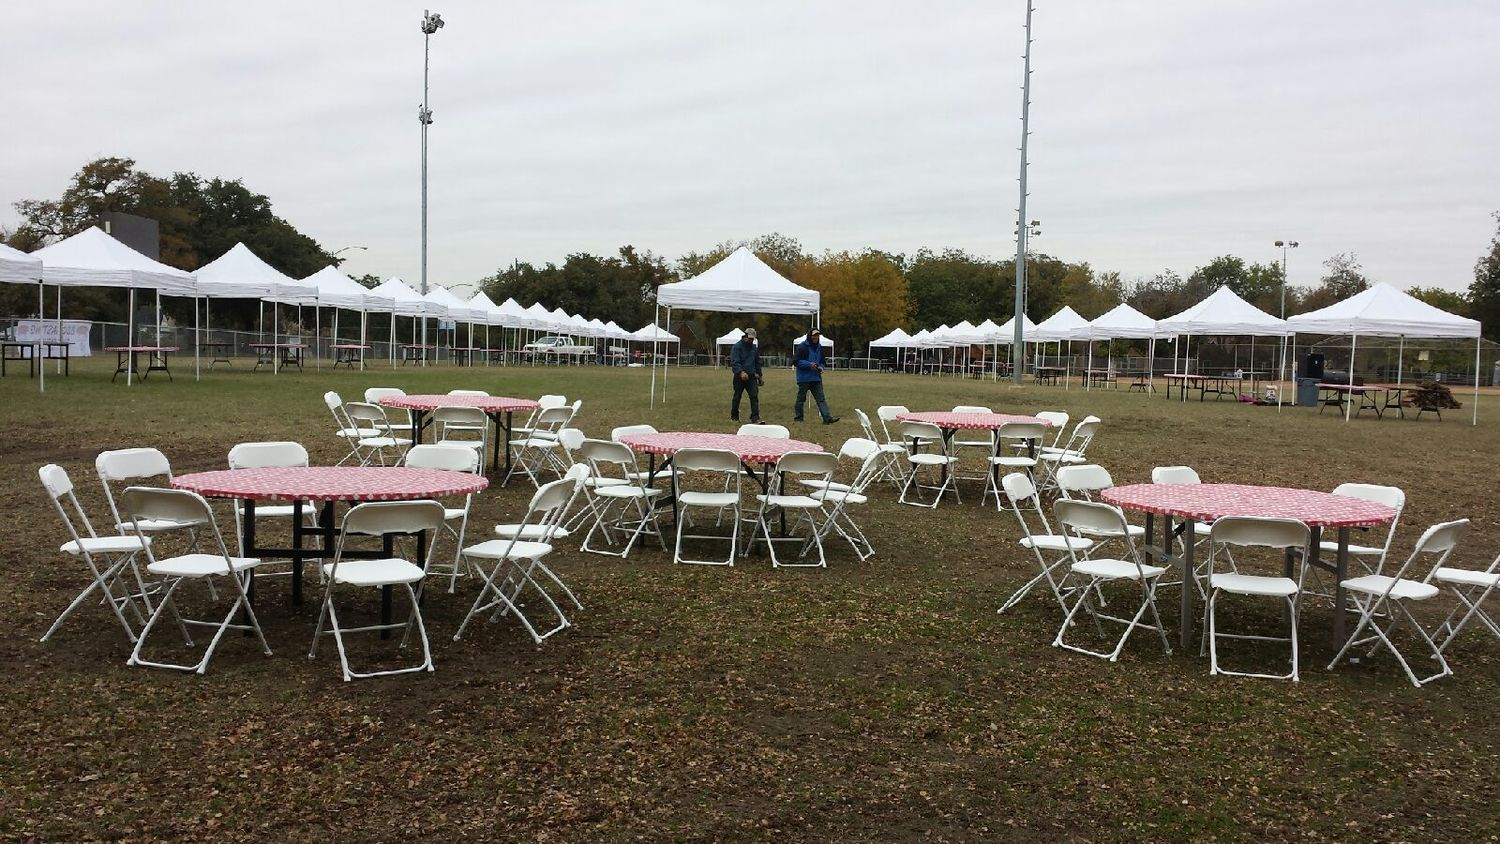 Party Event Rental Tent Rental Table Rent Chair Rental Stage Rental Dfw